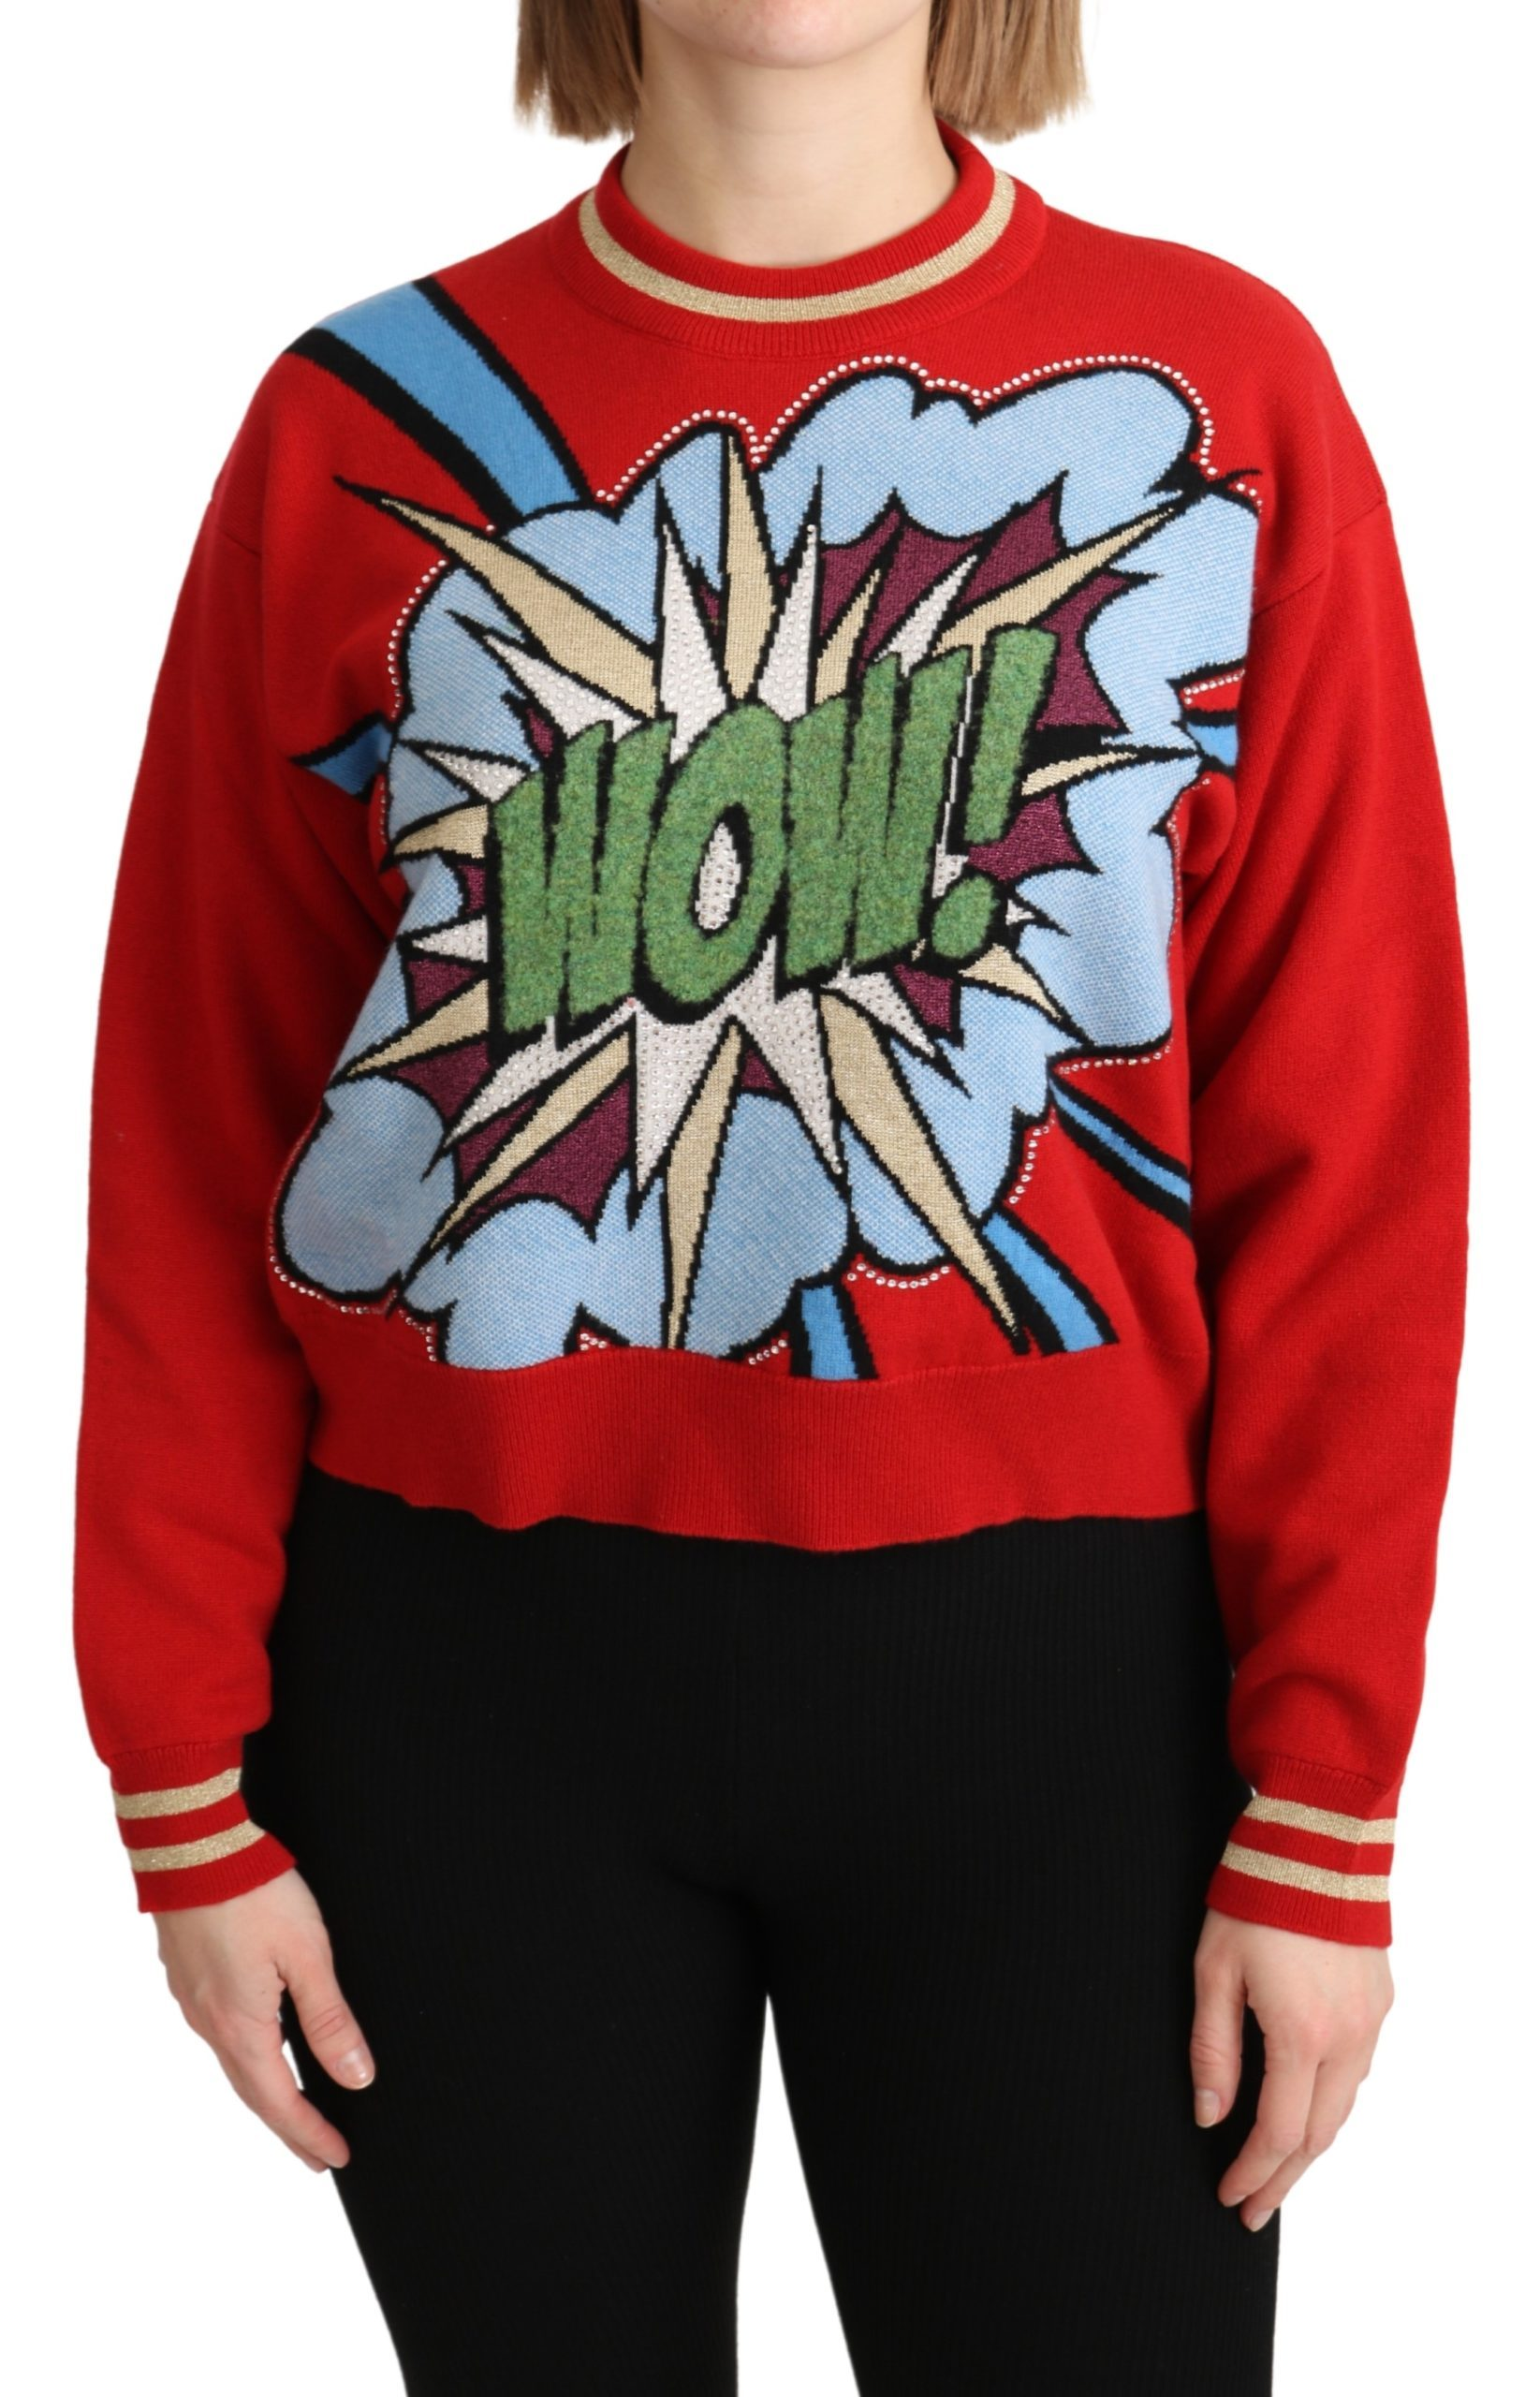 Dolce & Gabbana Women's Knitted Cashmere Cartoon Top Sweater Red TSH5152 - IT40|S